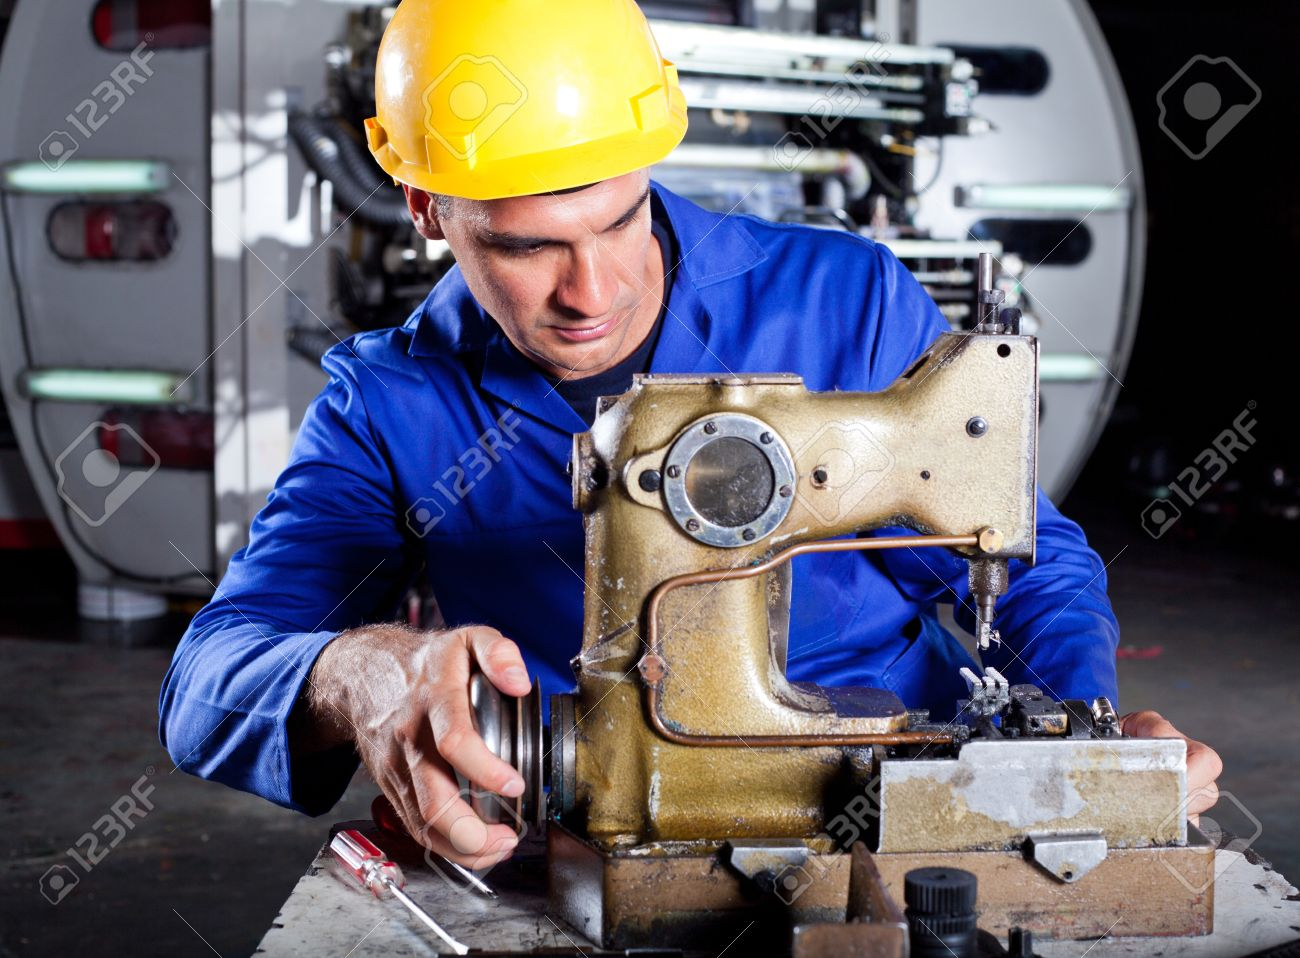 Male Technician Fixing Industrial Sewing Machine In Factory Stock ...